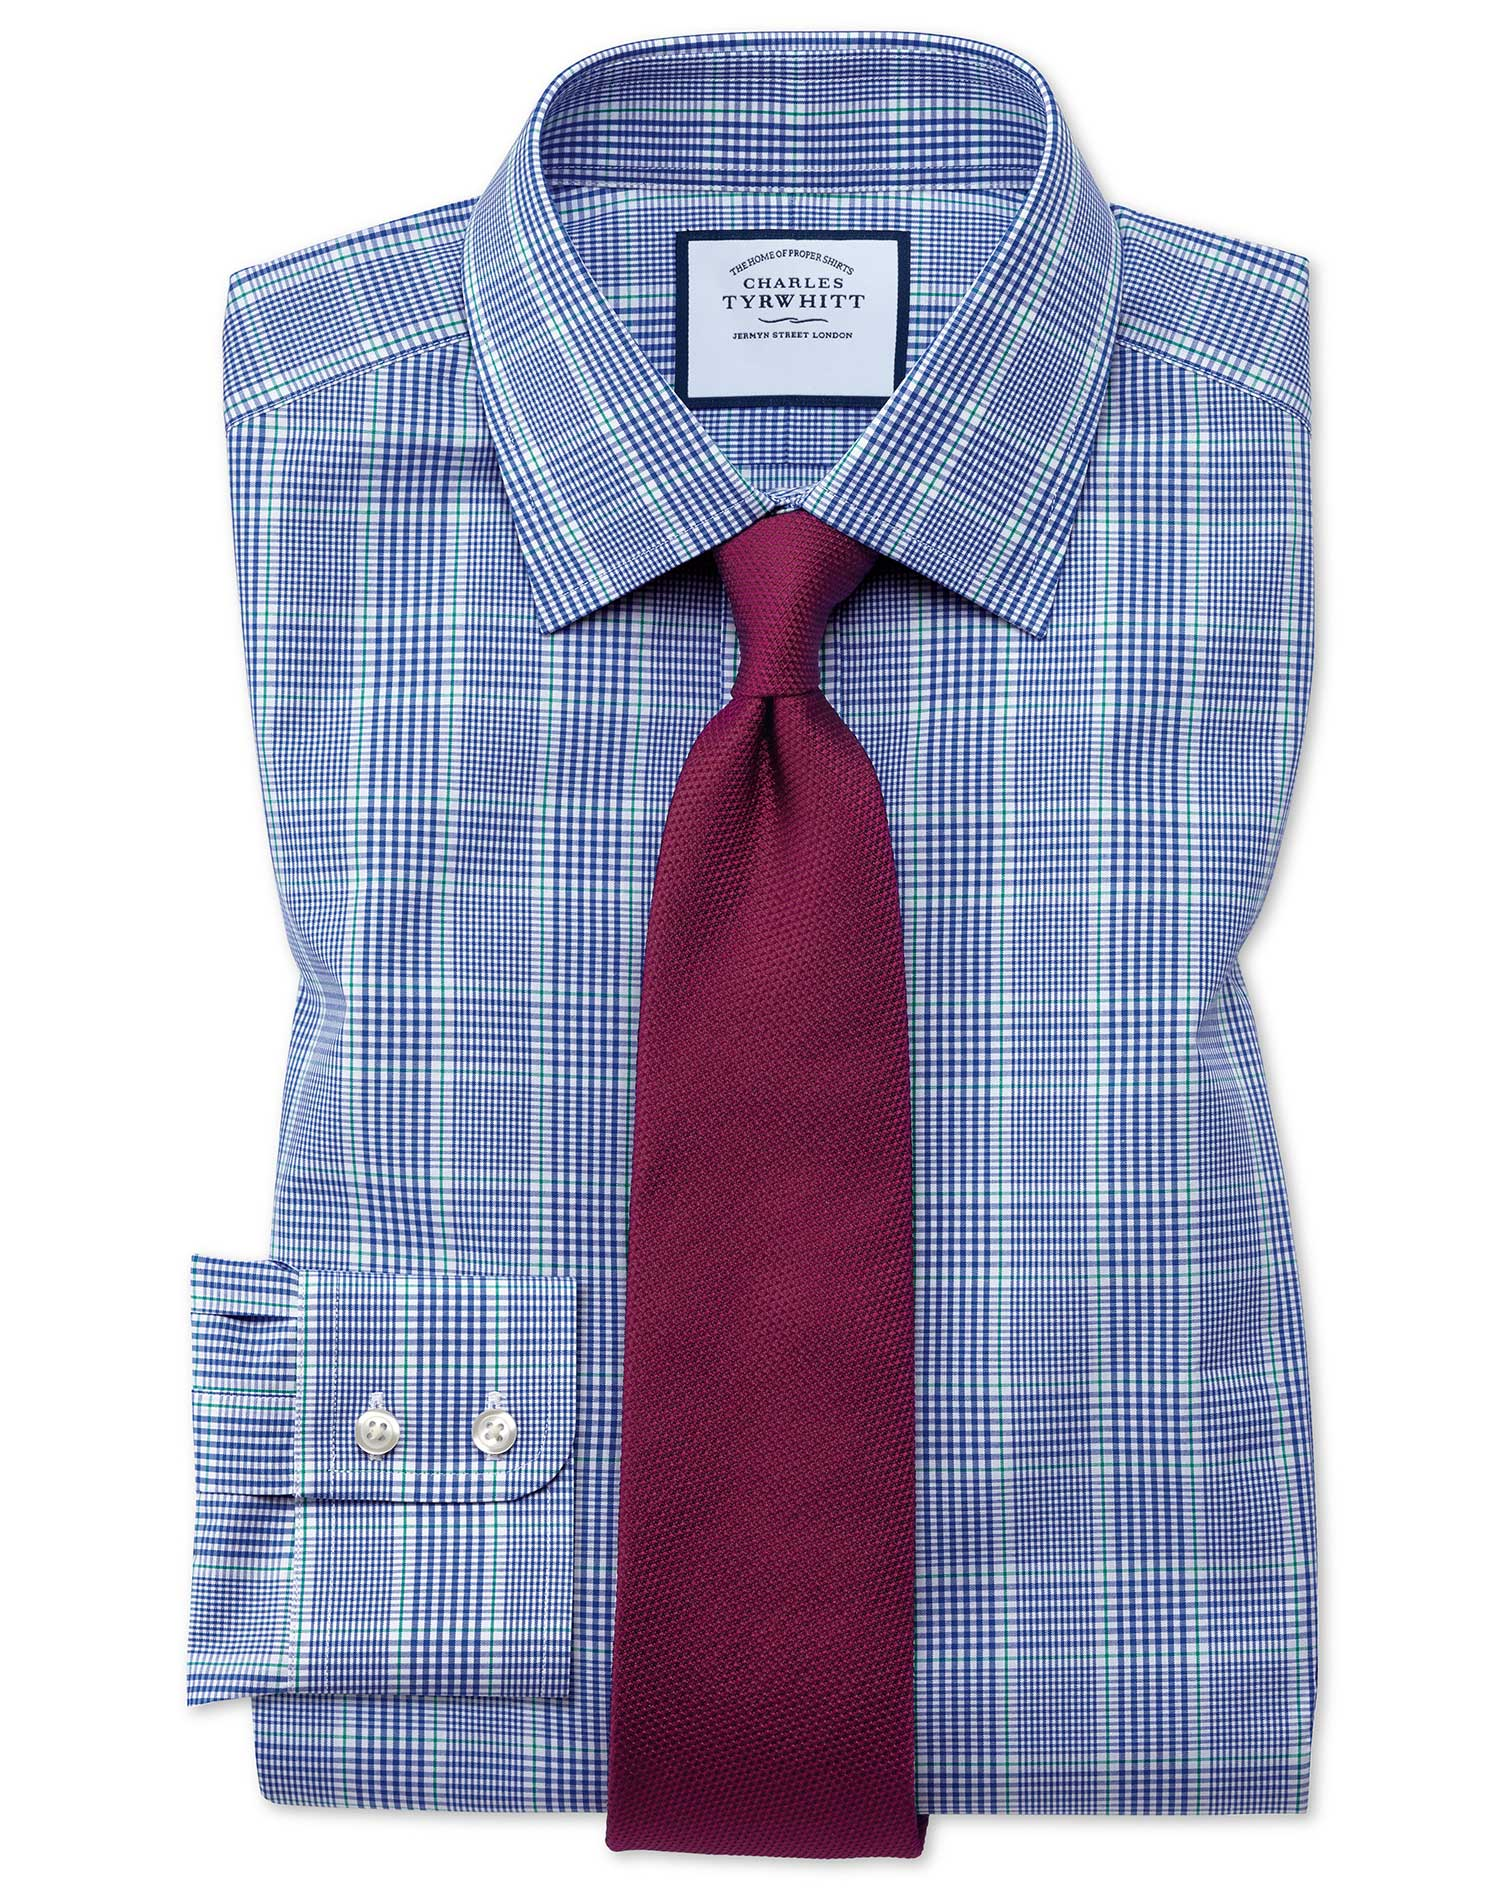 Slim Fit Prince Of Wales Check Blue and Green Cotton Formal Shirt Double Cuff Size 15/33 by Charles